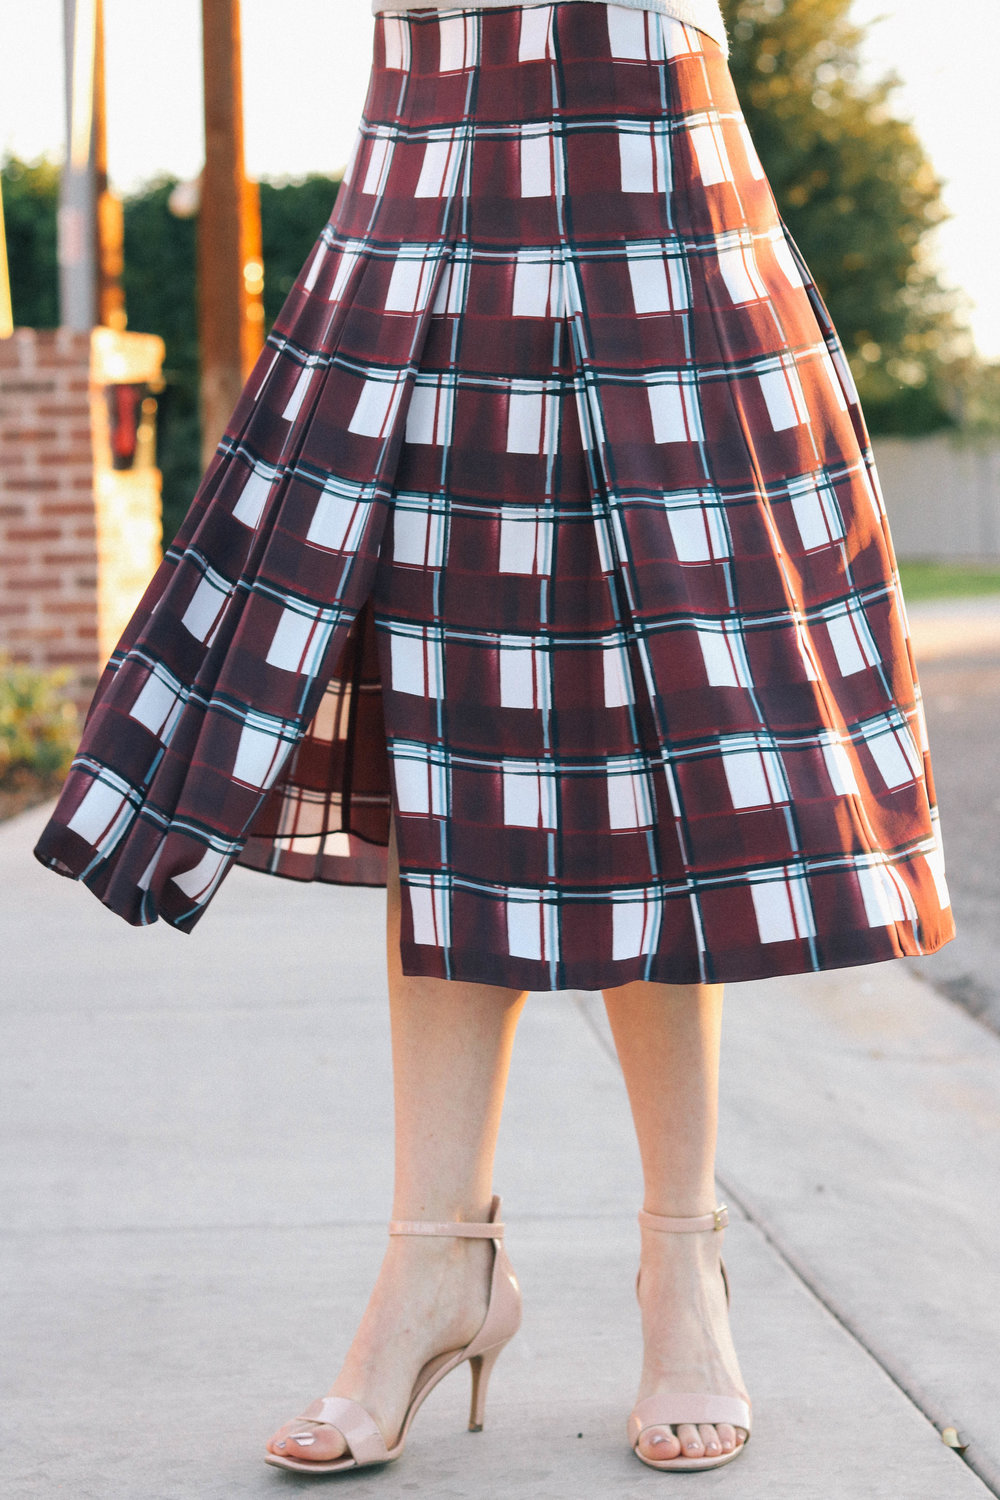 bb-plaid-midi-skirt-005 (1 of 1).jpg